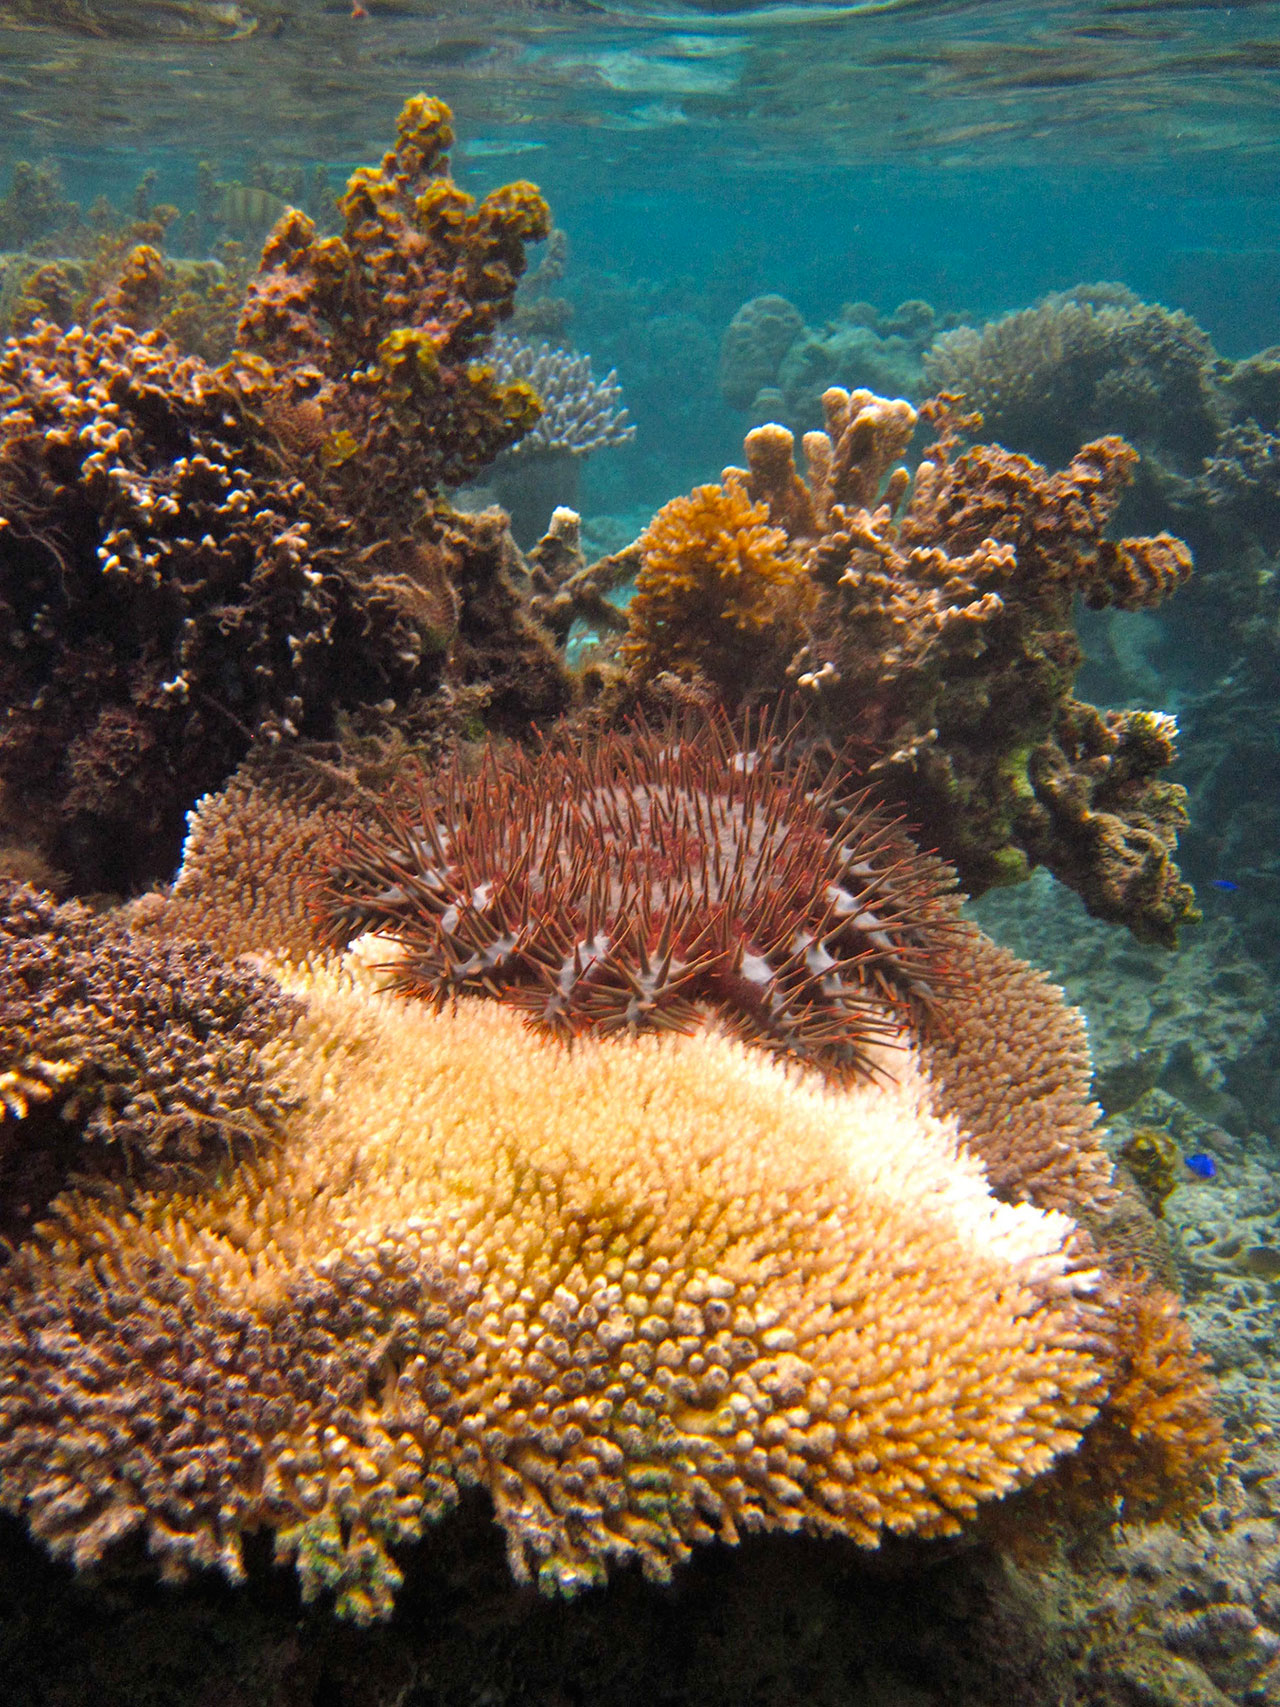 A crown of thorns sea star under the water on a reef, eating a large piece of coral